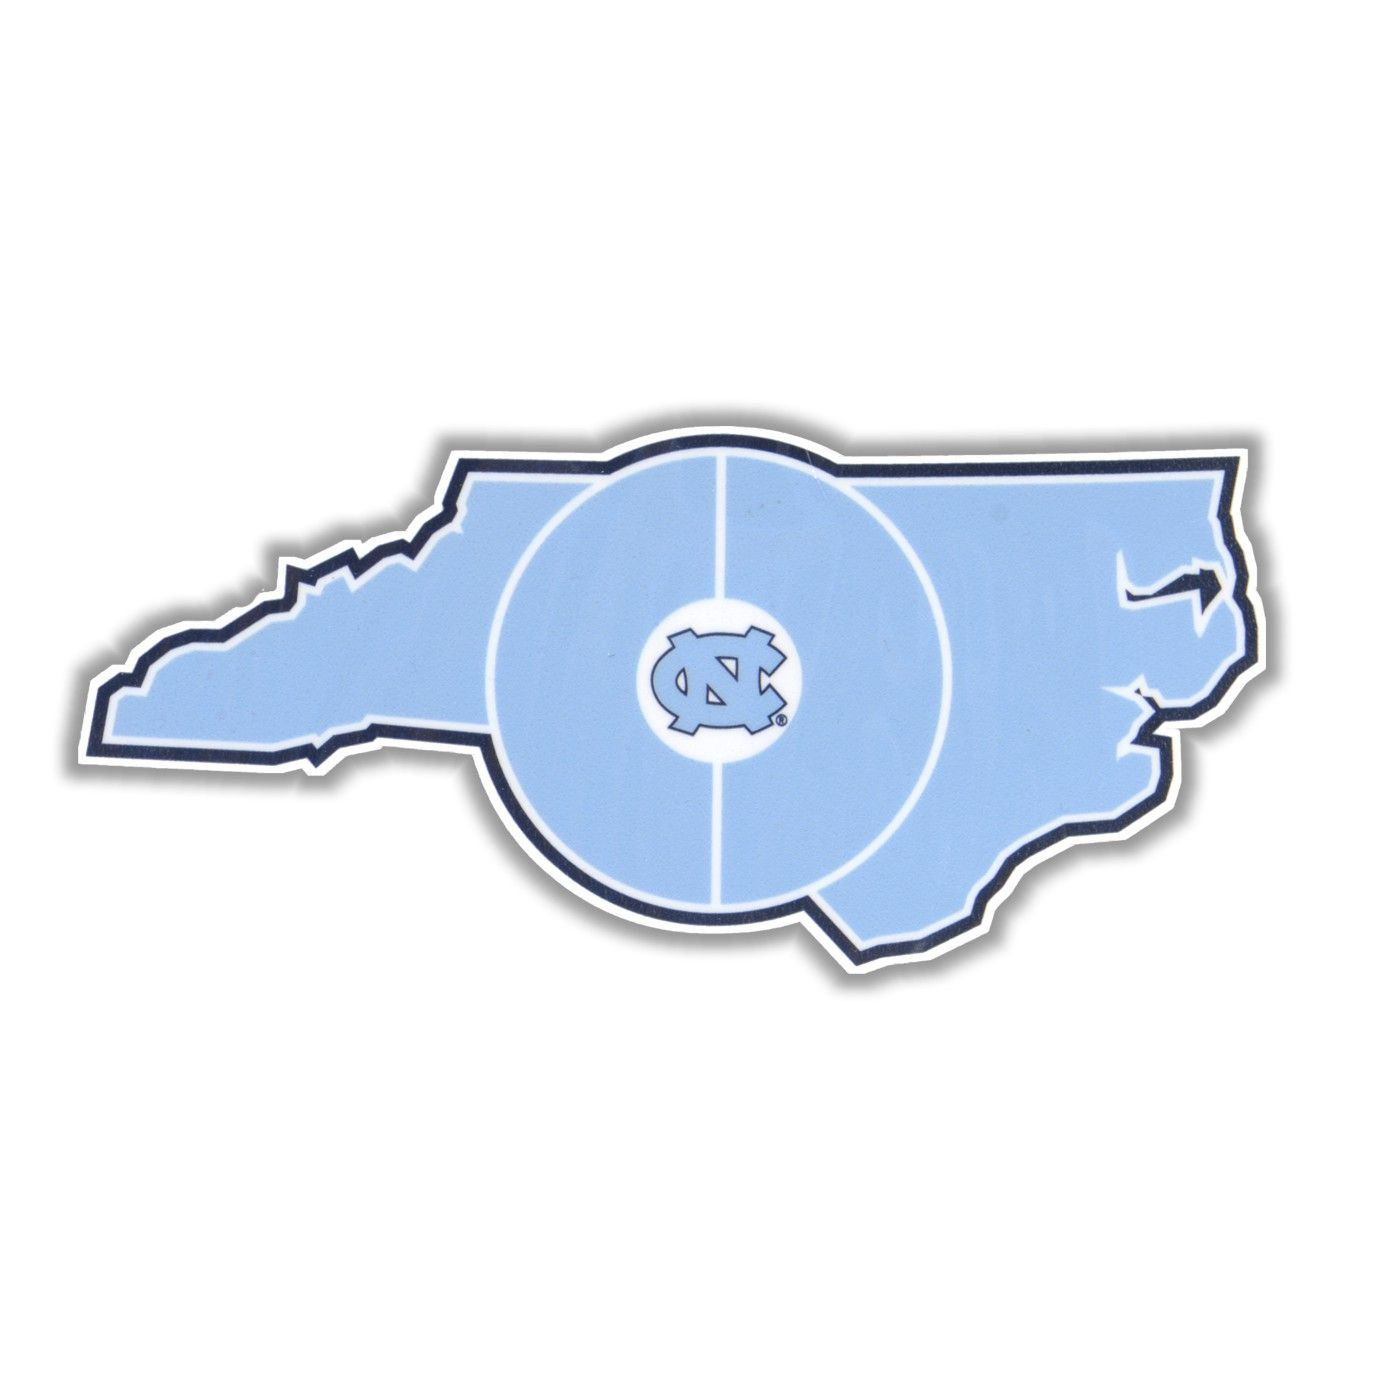 1400x1400 Small State Of Nc Basketball Court Logo Window Decal Basketball